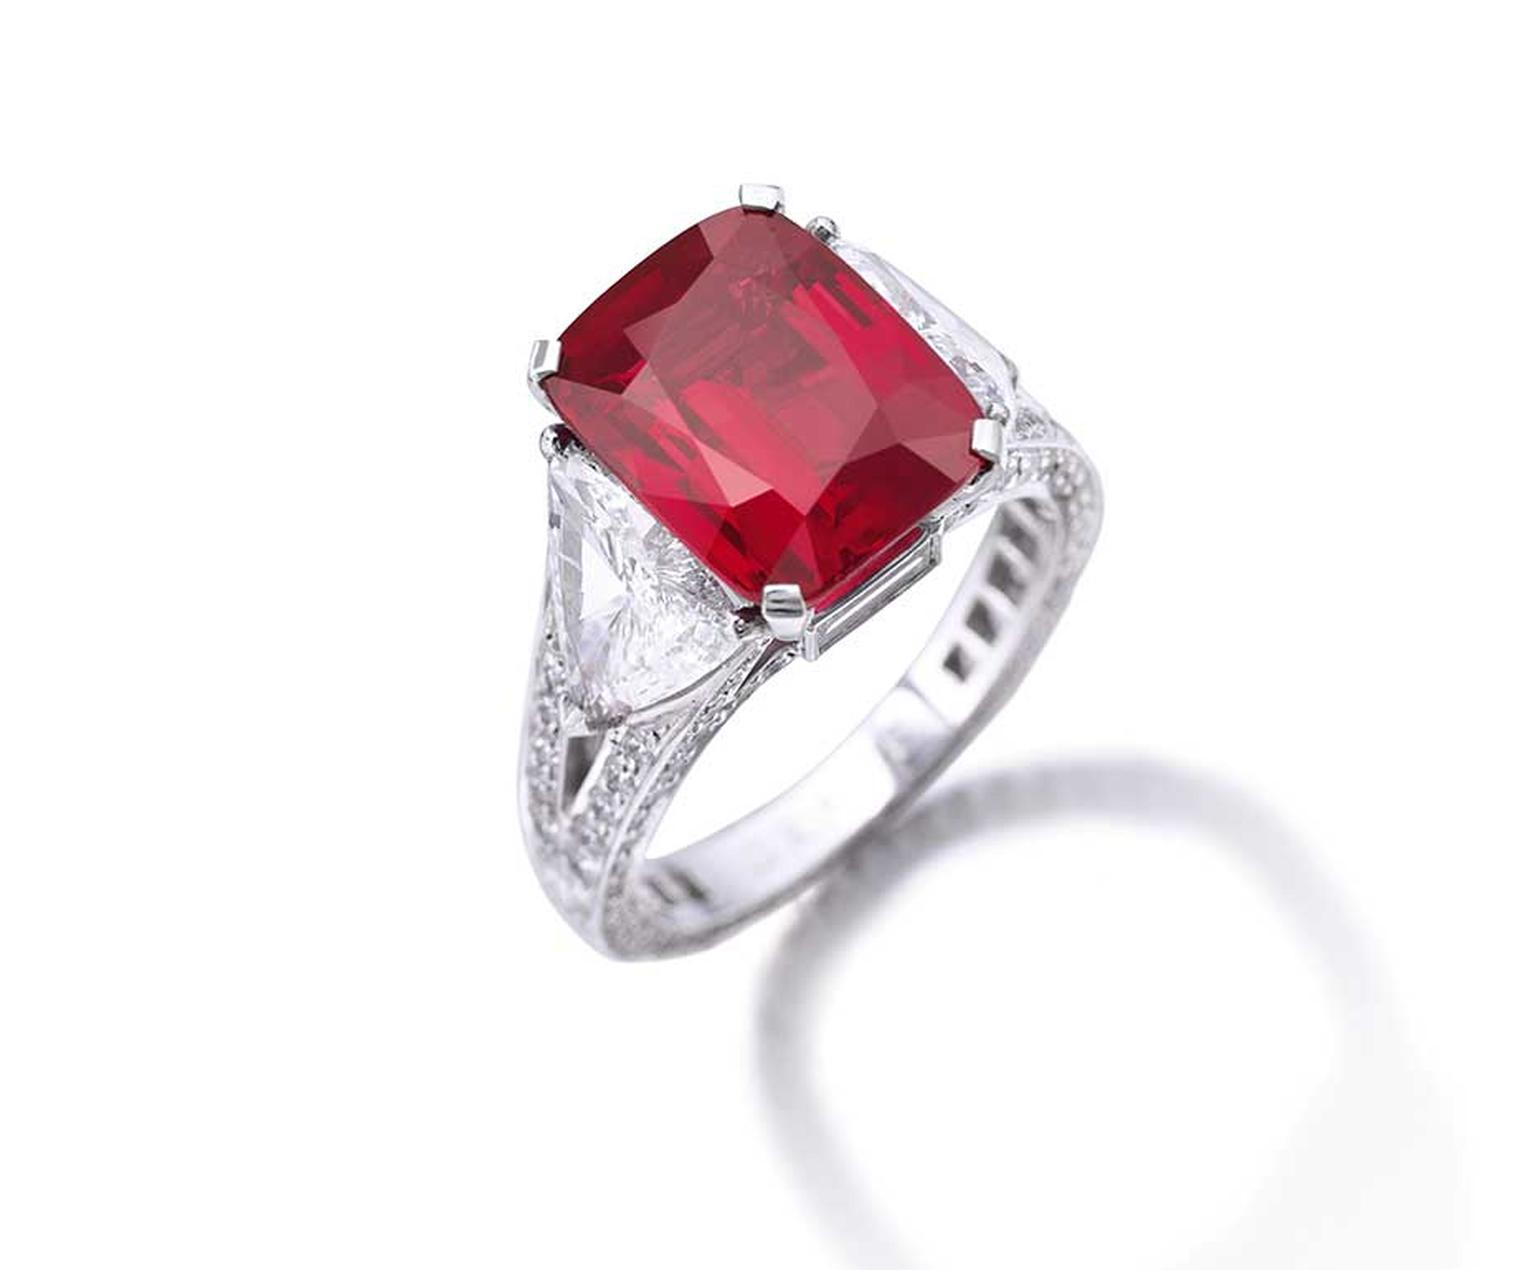 The 8.62 carat Graff ruby ring, from the collection of Greek financier Dimitri Mavrommatis, which set a new world record at auction for a ruby at Sotheby's Geneva in December 2014 when it sold for $8.6 million.